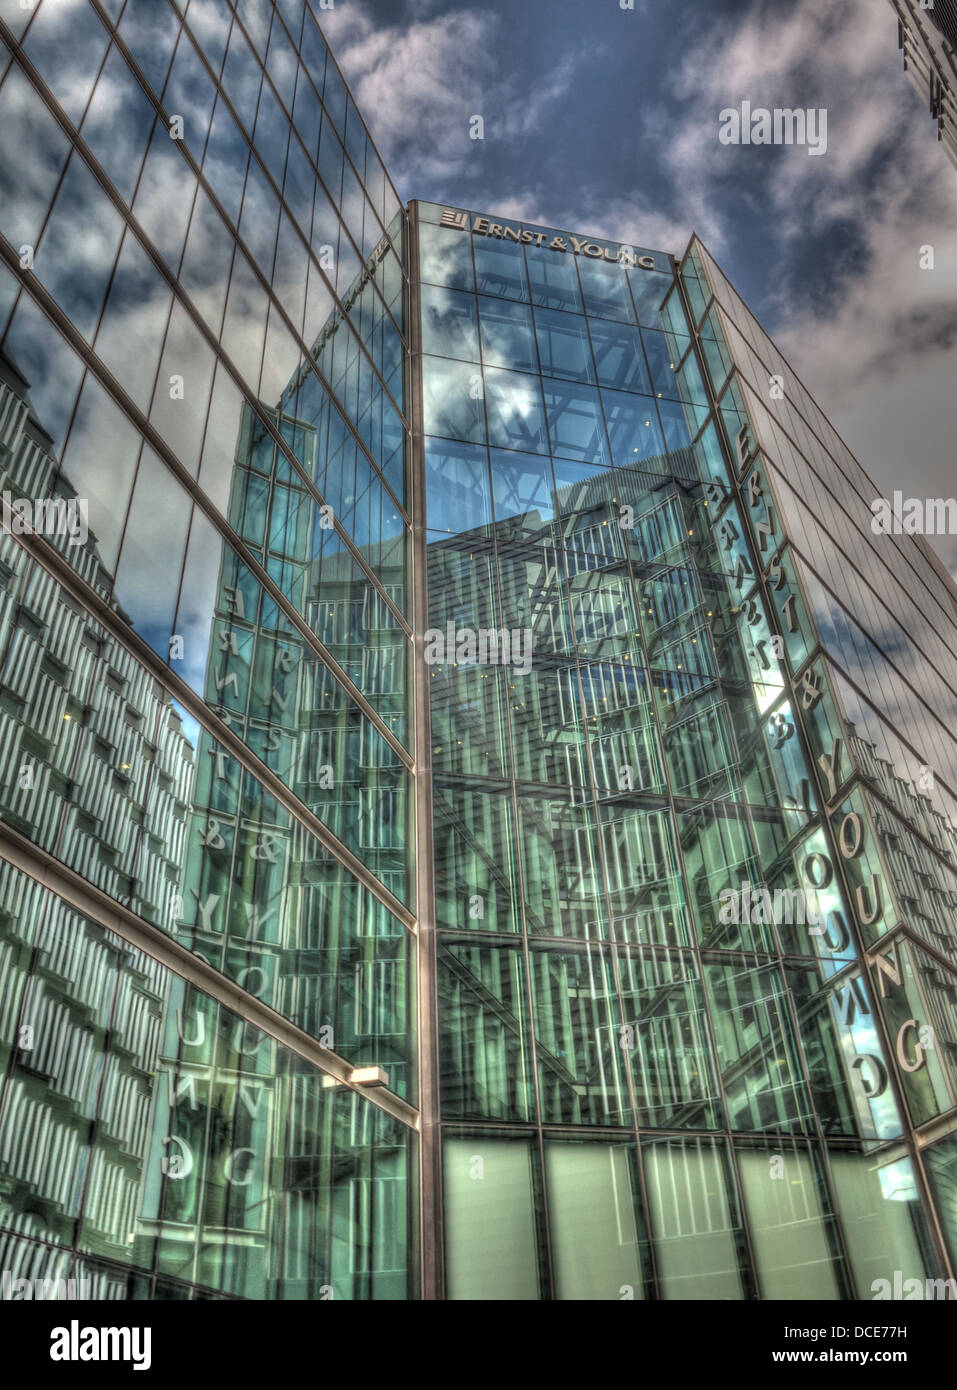 South,bank,southwark,glass,building,tower,towering,architecture,finance,financial,accountancy,services,accountant,EY,HQ,headquarters,headquarter,firm,firms,crash,city,of,assurance,tax,advice,advisory,big,business,Arthur,Whinney,reflection,reflections,cloud,clouds,more,place,ten,story,foster,gotonysmith,practice,office,practices,fingers,glass,balustrades,partners,Designed,as,a,new,headquarters,for,Ernst,&,Young,the,ten-storey,1,More,London,Place,provides,the,company,with,35,000 square metres of high-quality,flexible,office,space,on,the,south,bank,of,the,River,Thames,between,London,and,Tower,Bridges.,A,full-height,atrium,links,the,building's,two,'fingers',of,office,space,creating,a,dramatic,entrance,space,which,is,crisscrossed,with,three,bridges,per,floor,with,glass,balustrades.,The,central,concrete,core,and,four,peripheral,steel,cores,are,clad,with,extruded,aluminium,panels.,The,24m-wide,column-free,floor,plates,benefit,from,generous,amounts,of,daylight,through,the,atrium,glazed,facades,energy,usage,Bermondsey,LDSA,Built,in,Quality,Awards,Winner,Large,Commercial,category,Buy Pictures of,Buy Images Of